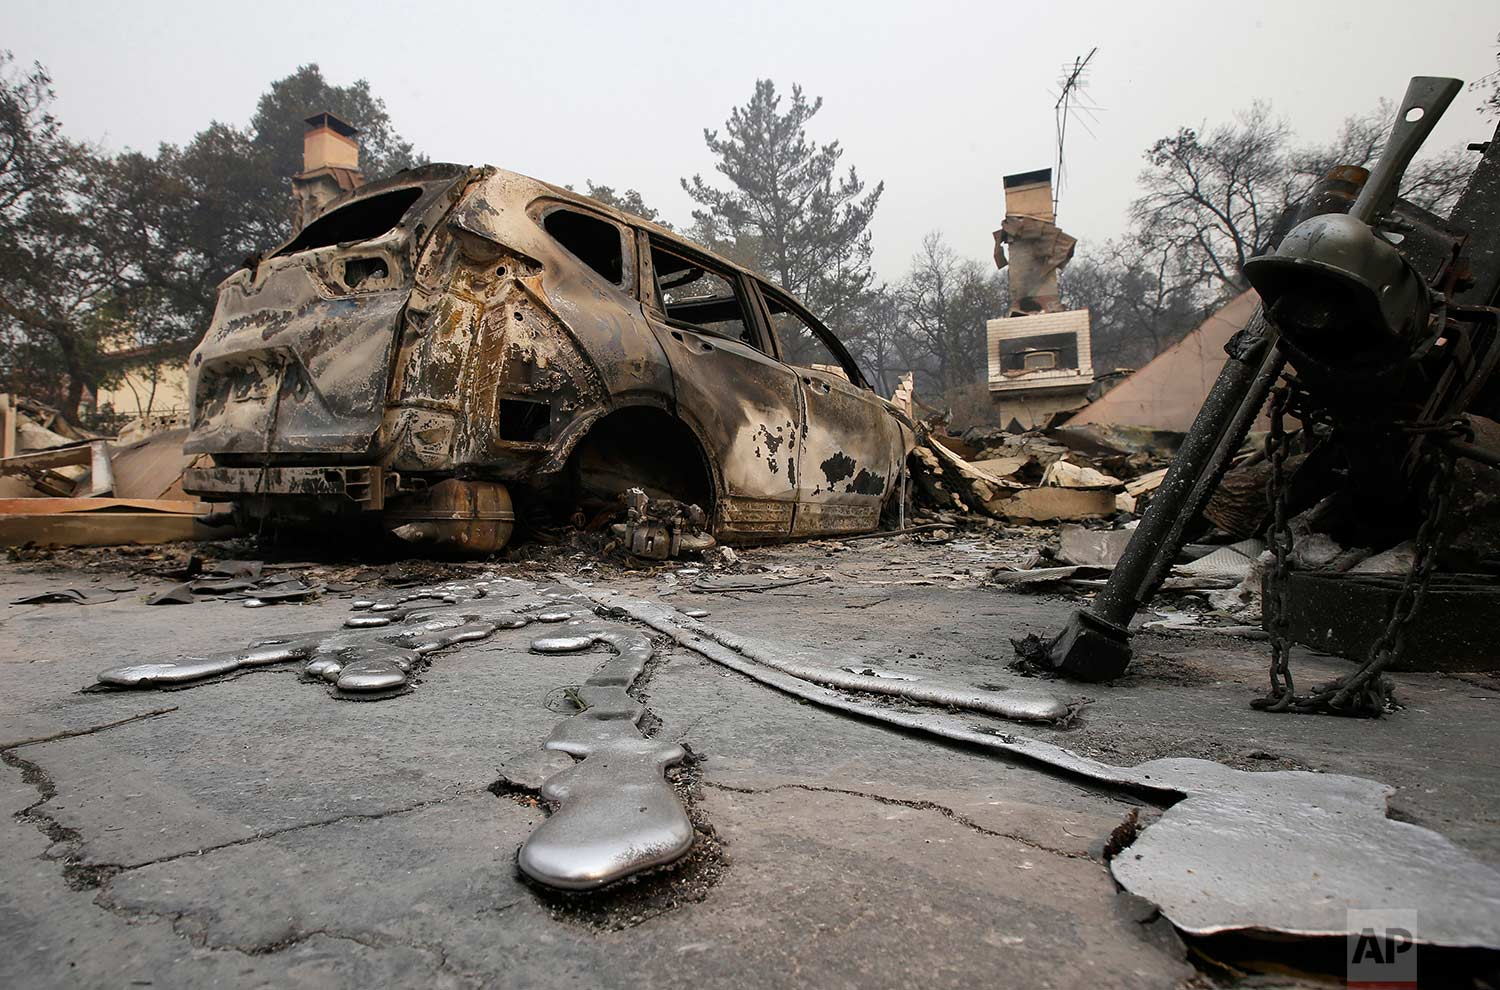 Streams of solidified melted metal reach out from a destroyed vehicle parked at a home Tuesday, Oct. 10, 2017, after a wildfire near Napa, Calif. (AP Photo/Rich Pedroncelli)